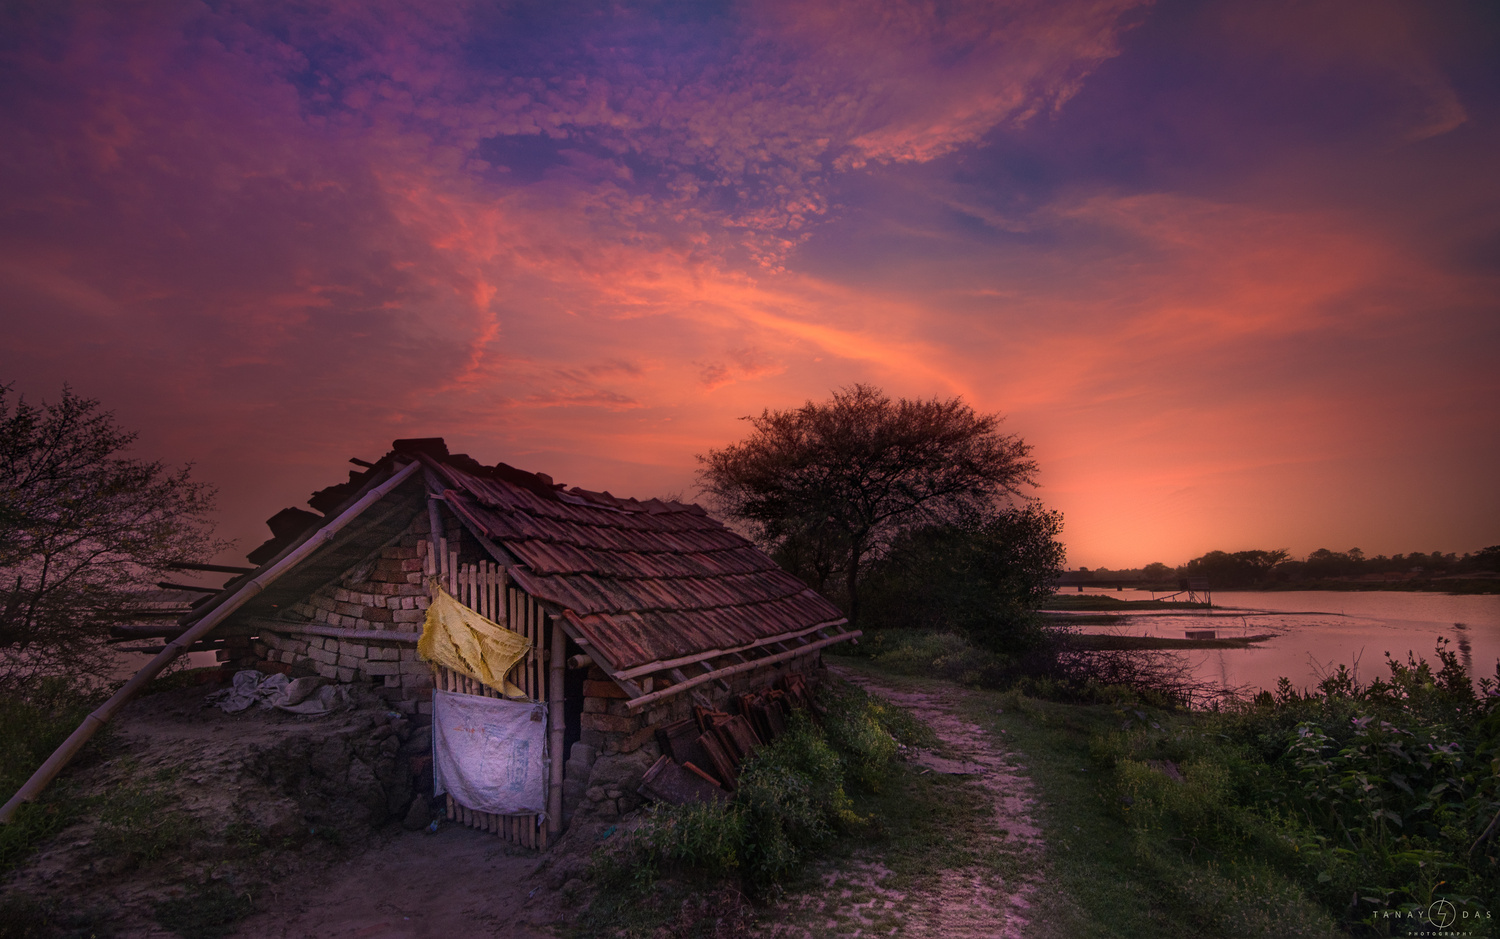 Rural Lands by TANAY DAS